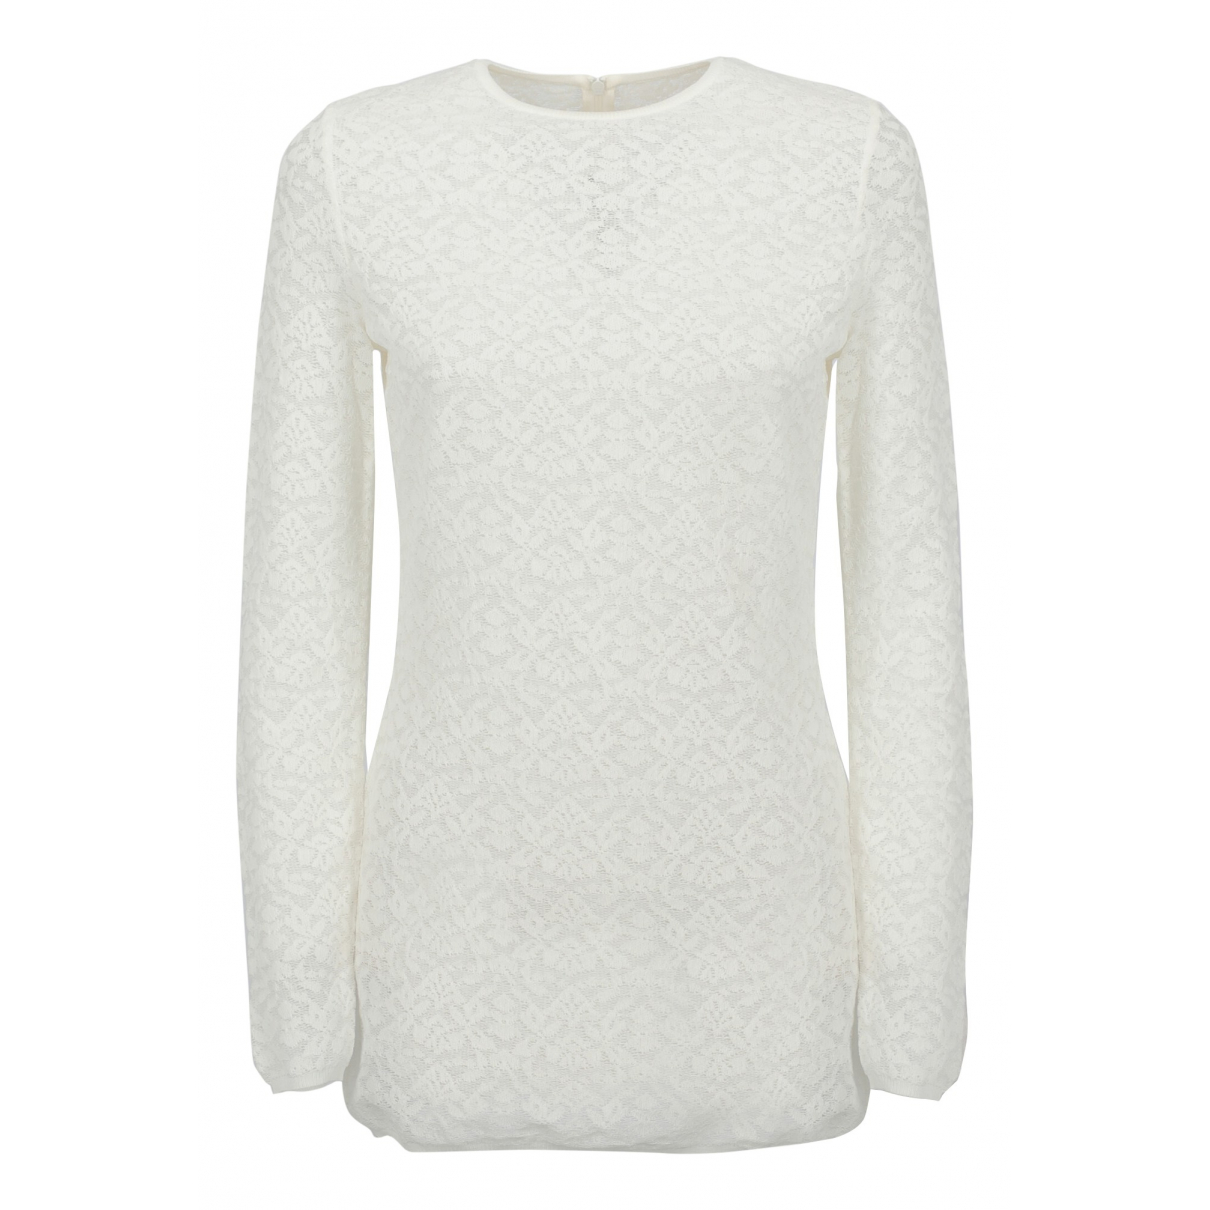 Stella Mccartney N White  top for Women 42 IT